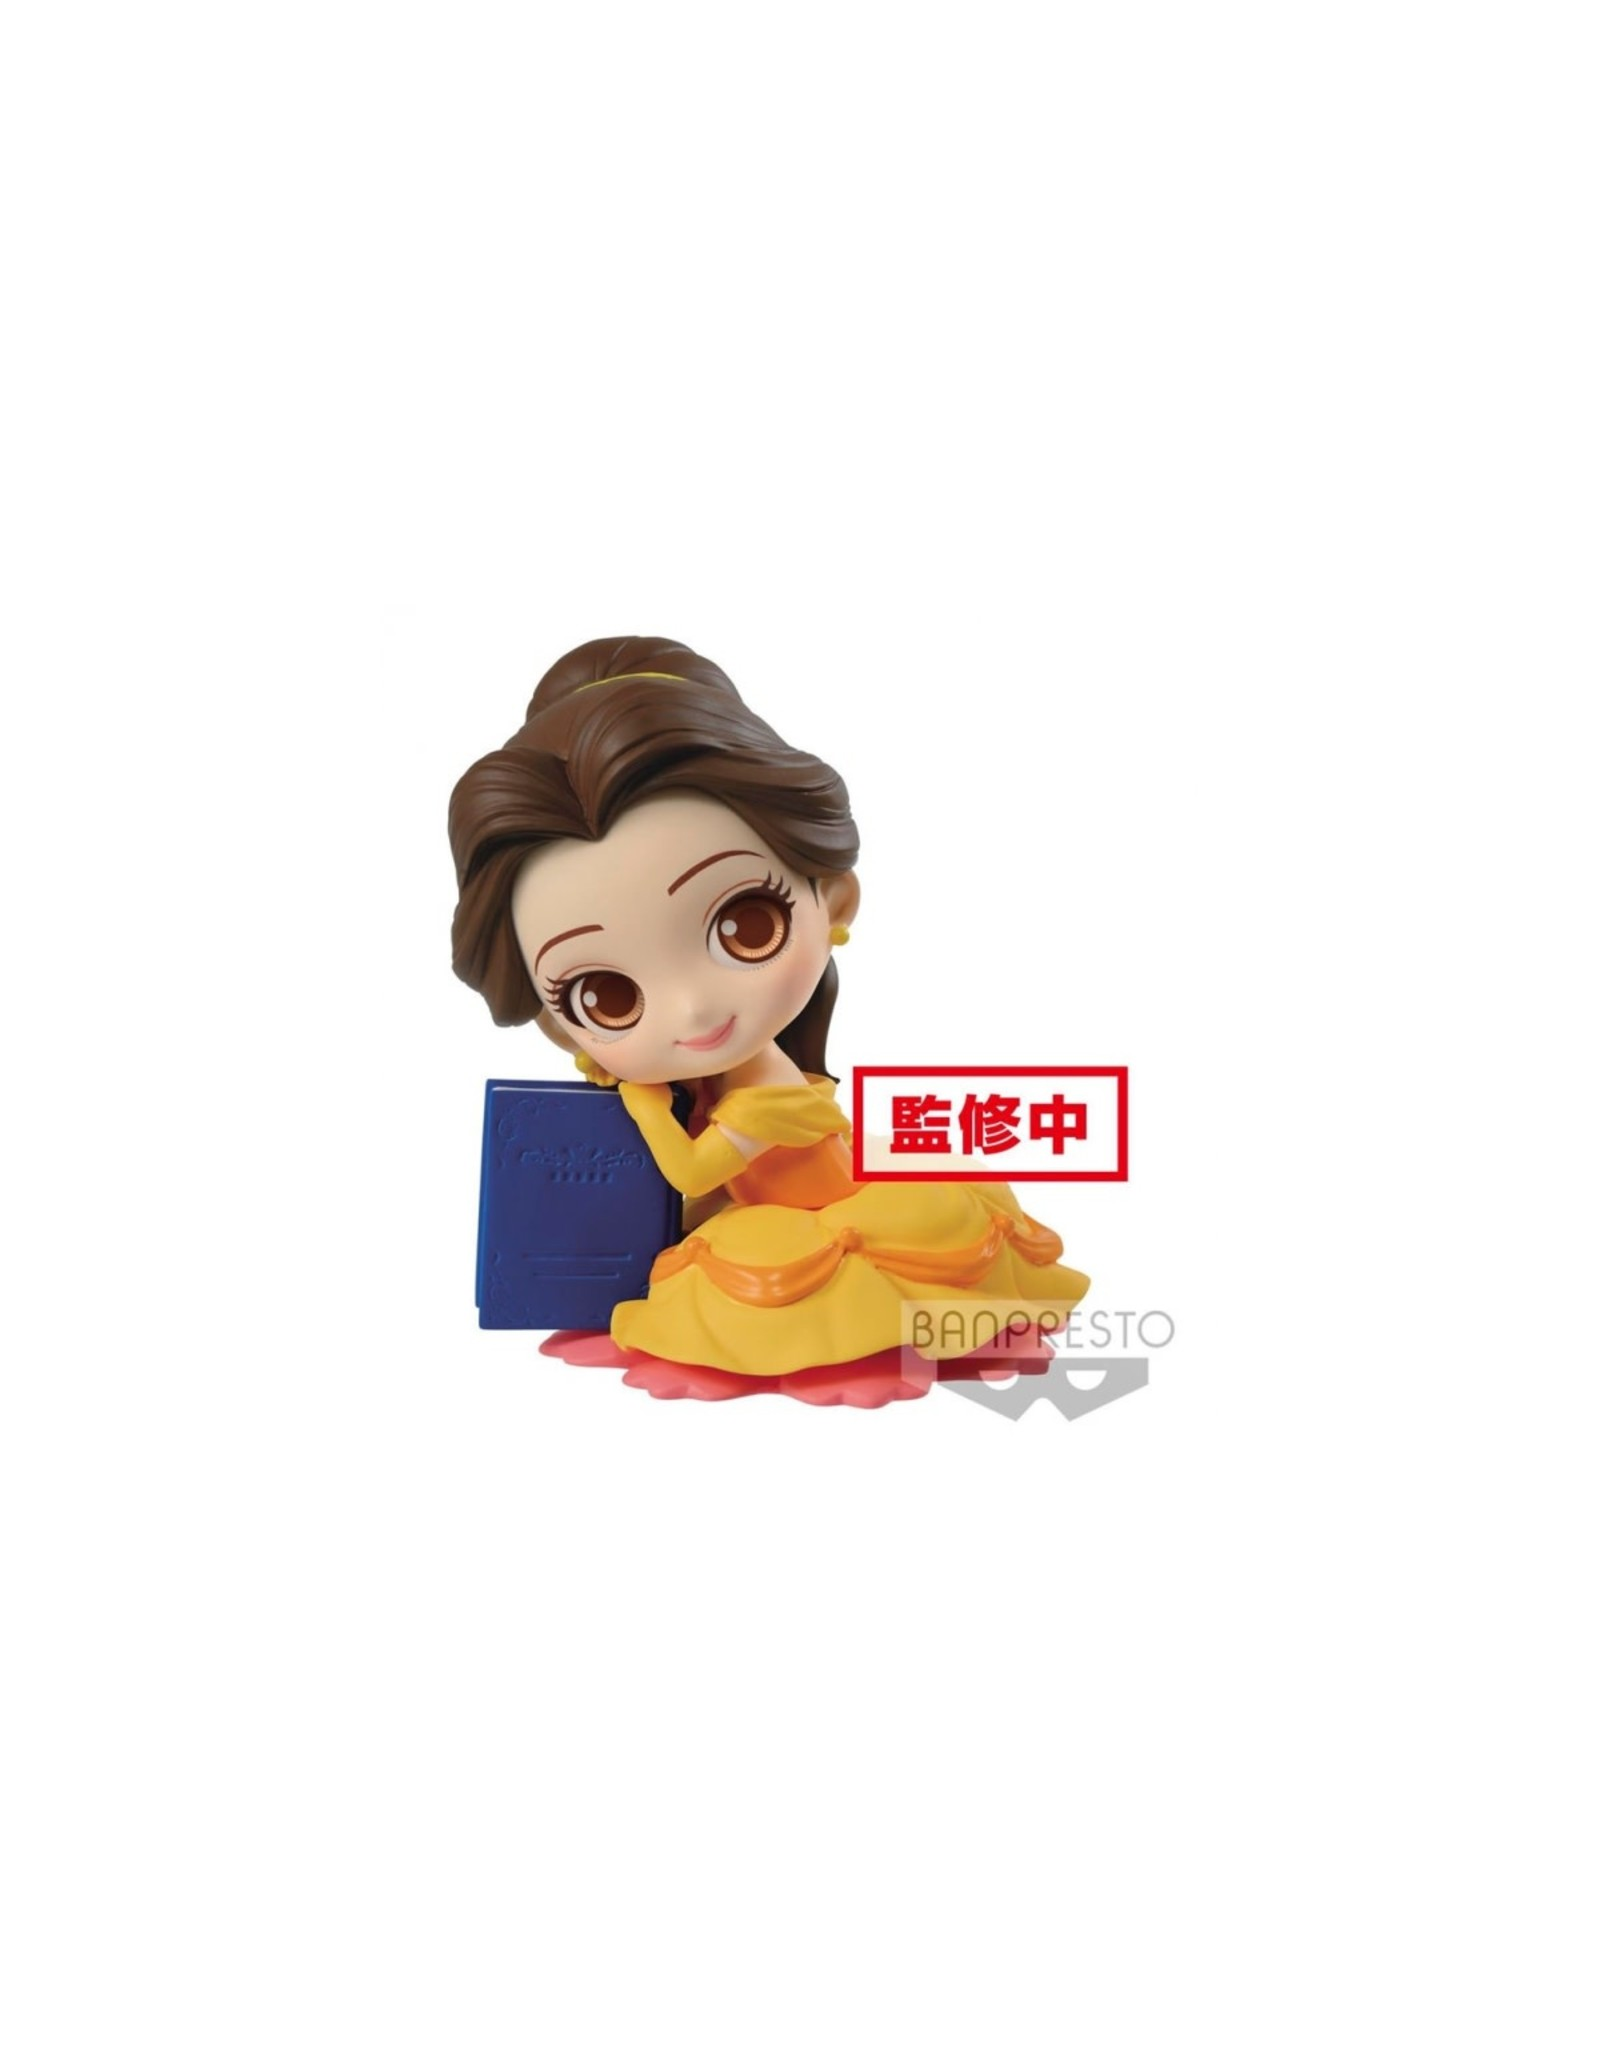 Banpresto BEAUTY AND THE BEAST Q Posket Sweetiny 8cm - Belle Version A